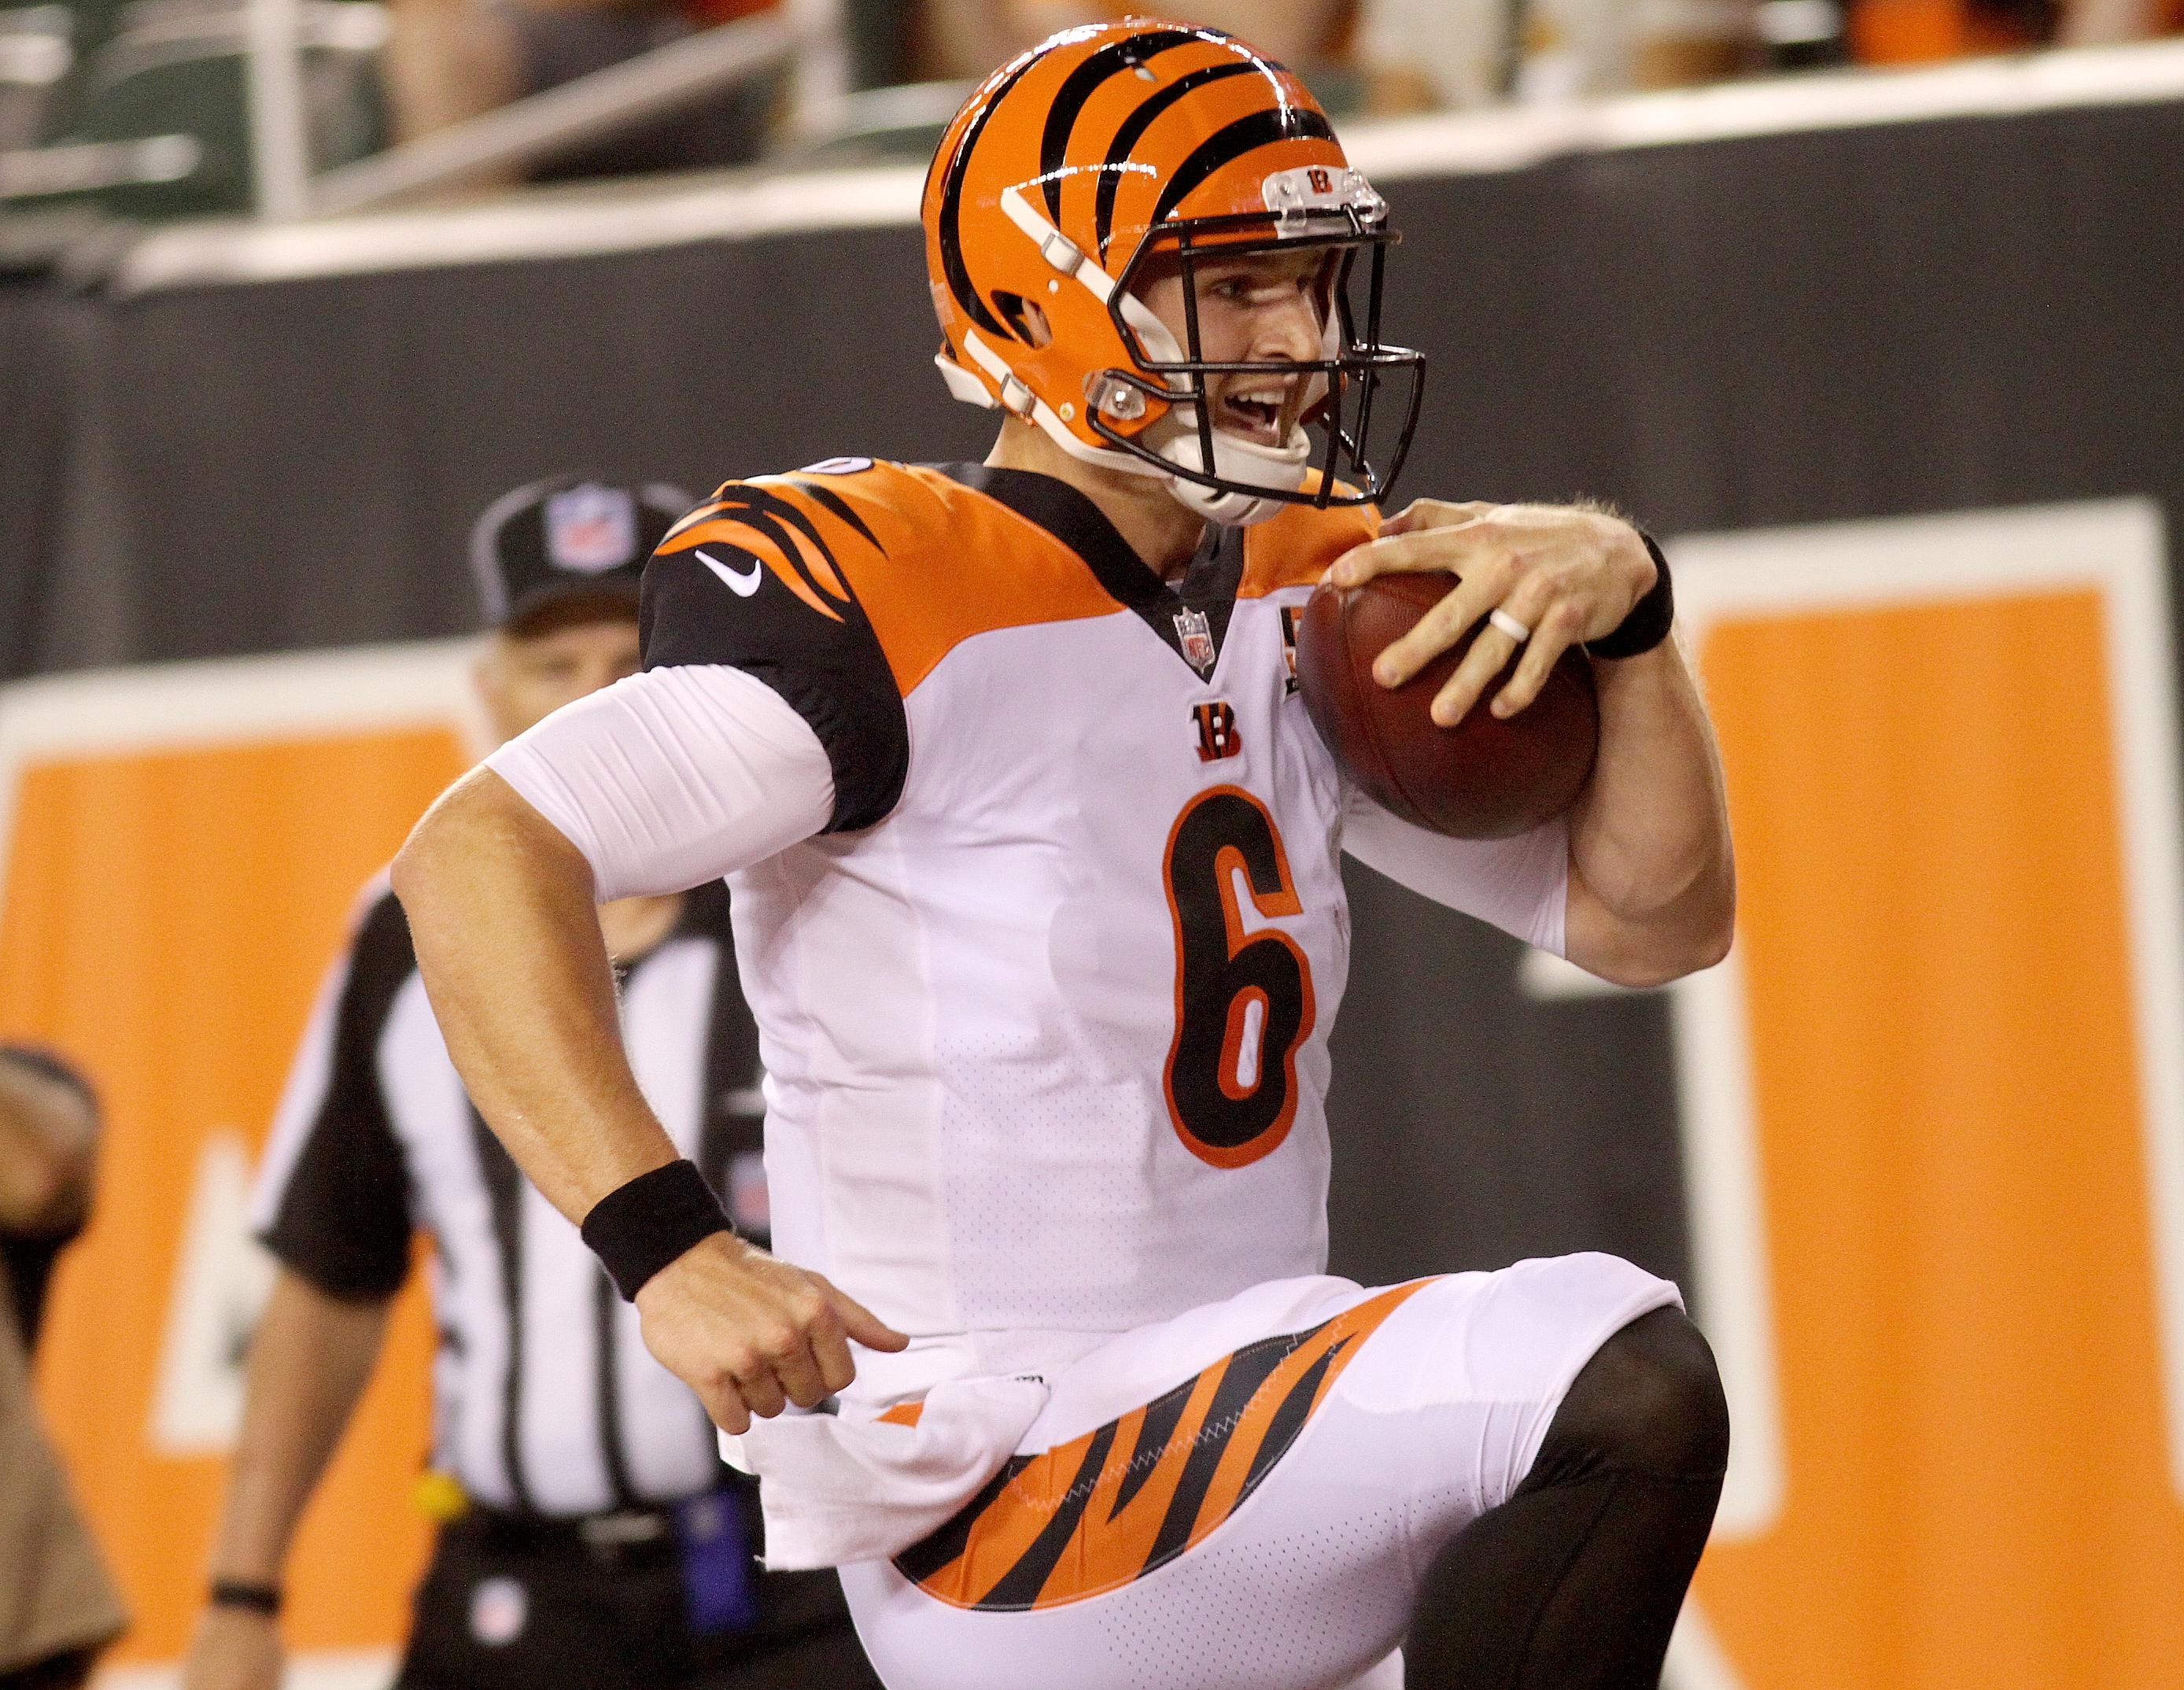 The Bengals placed quarterback Jeff Driskel on the injured reserve list on Sunday, but because they carried him to the 53-man roster he is eligible to return after eight weeks (WKRC/Tony Tribble).